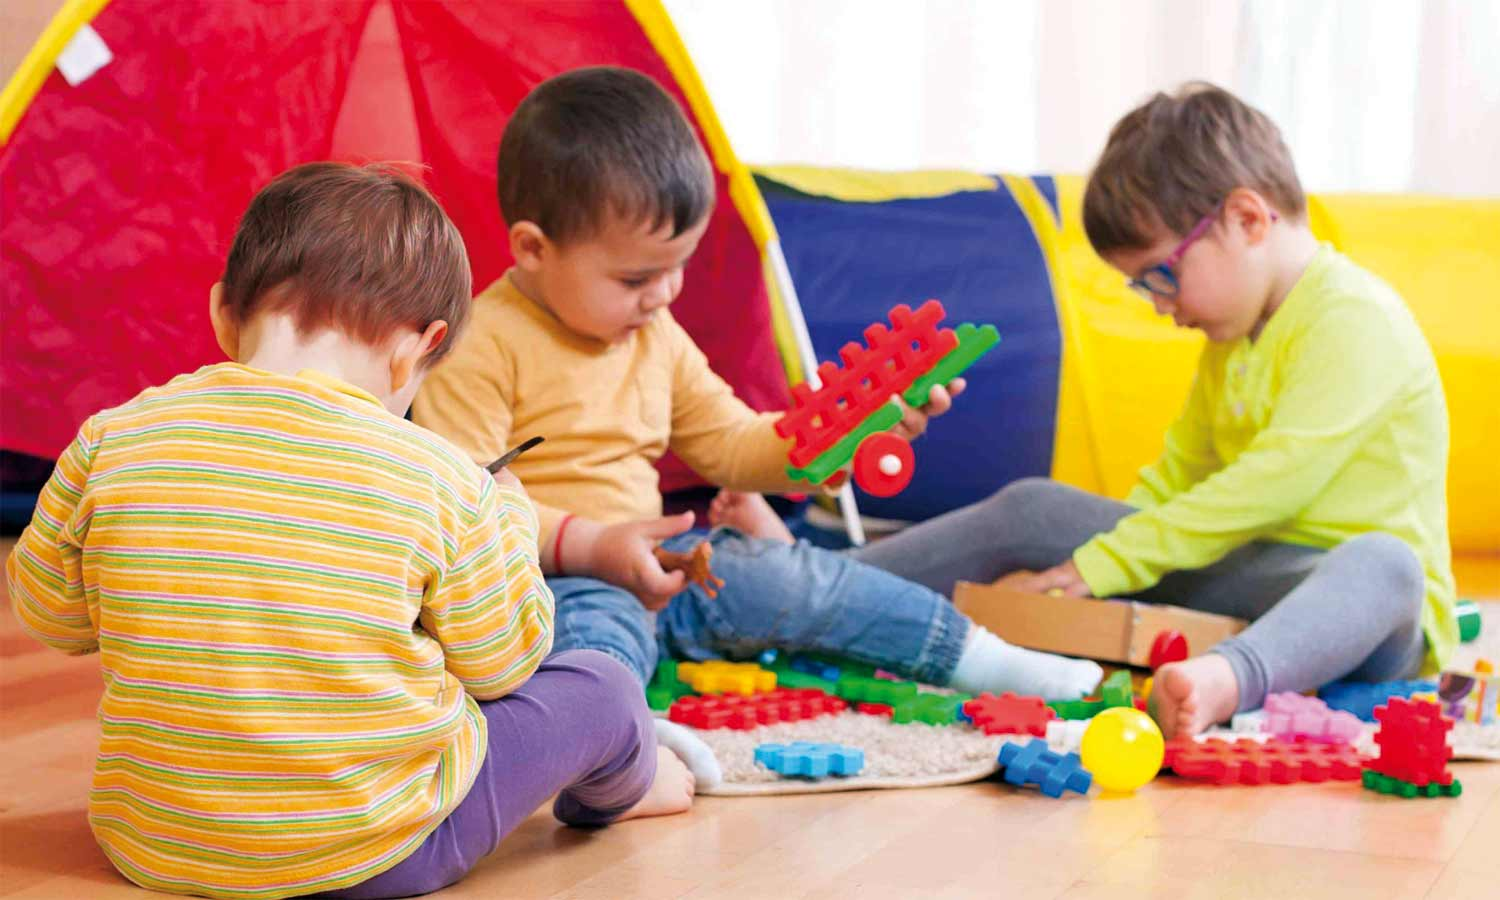 children playing with blocks in a playschool - Images Of Children Playing At School